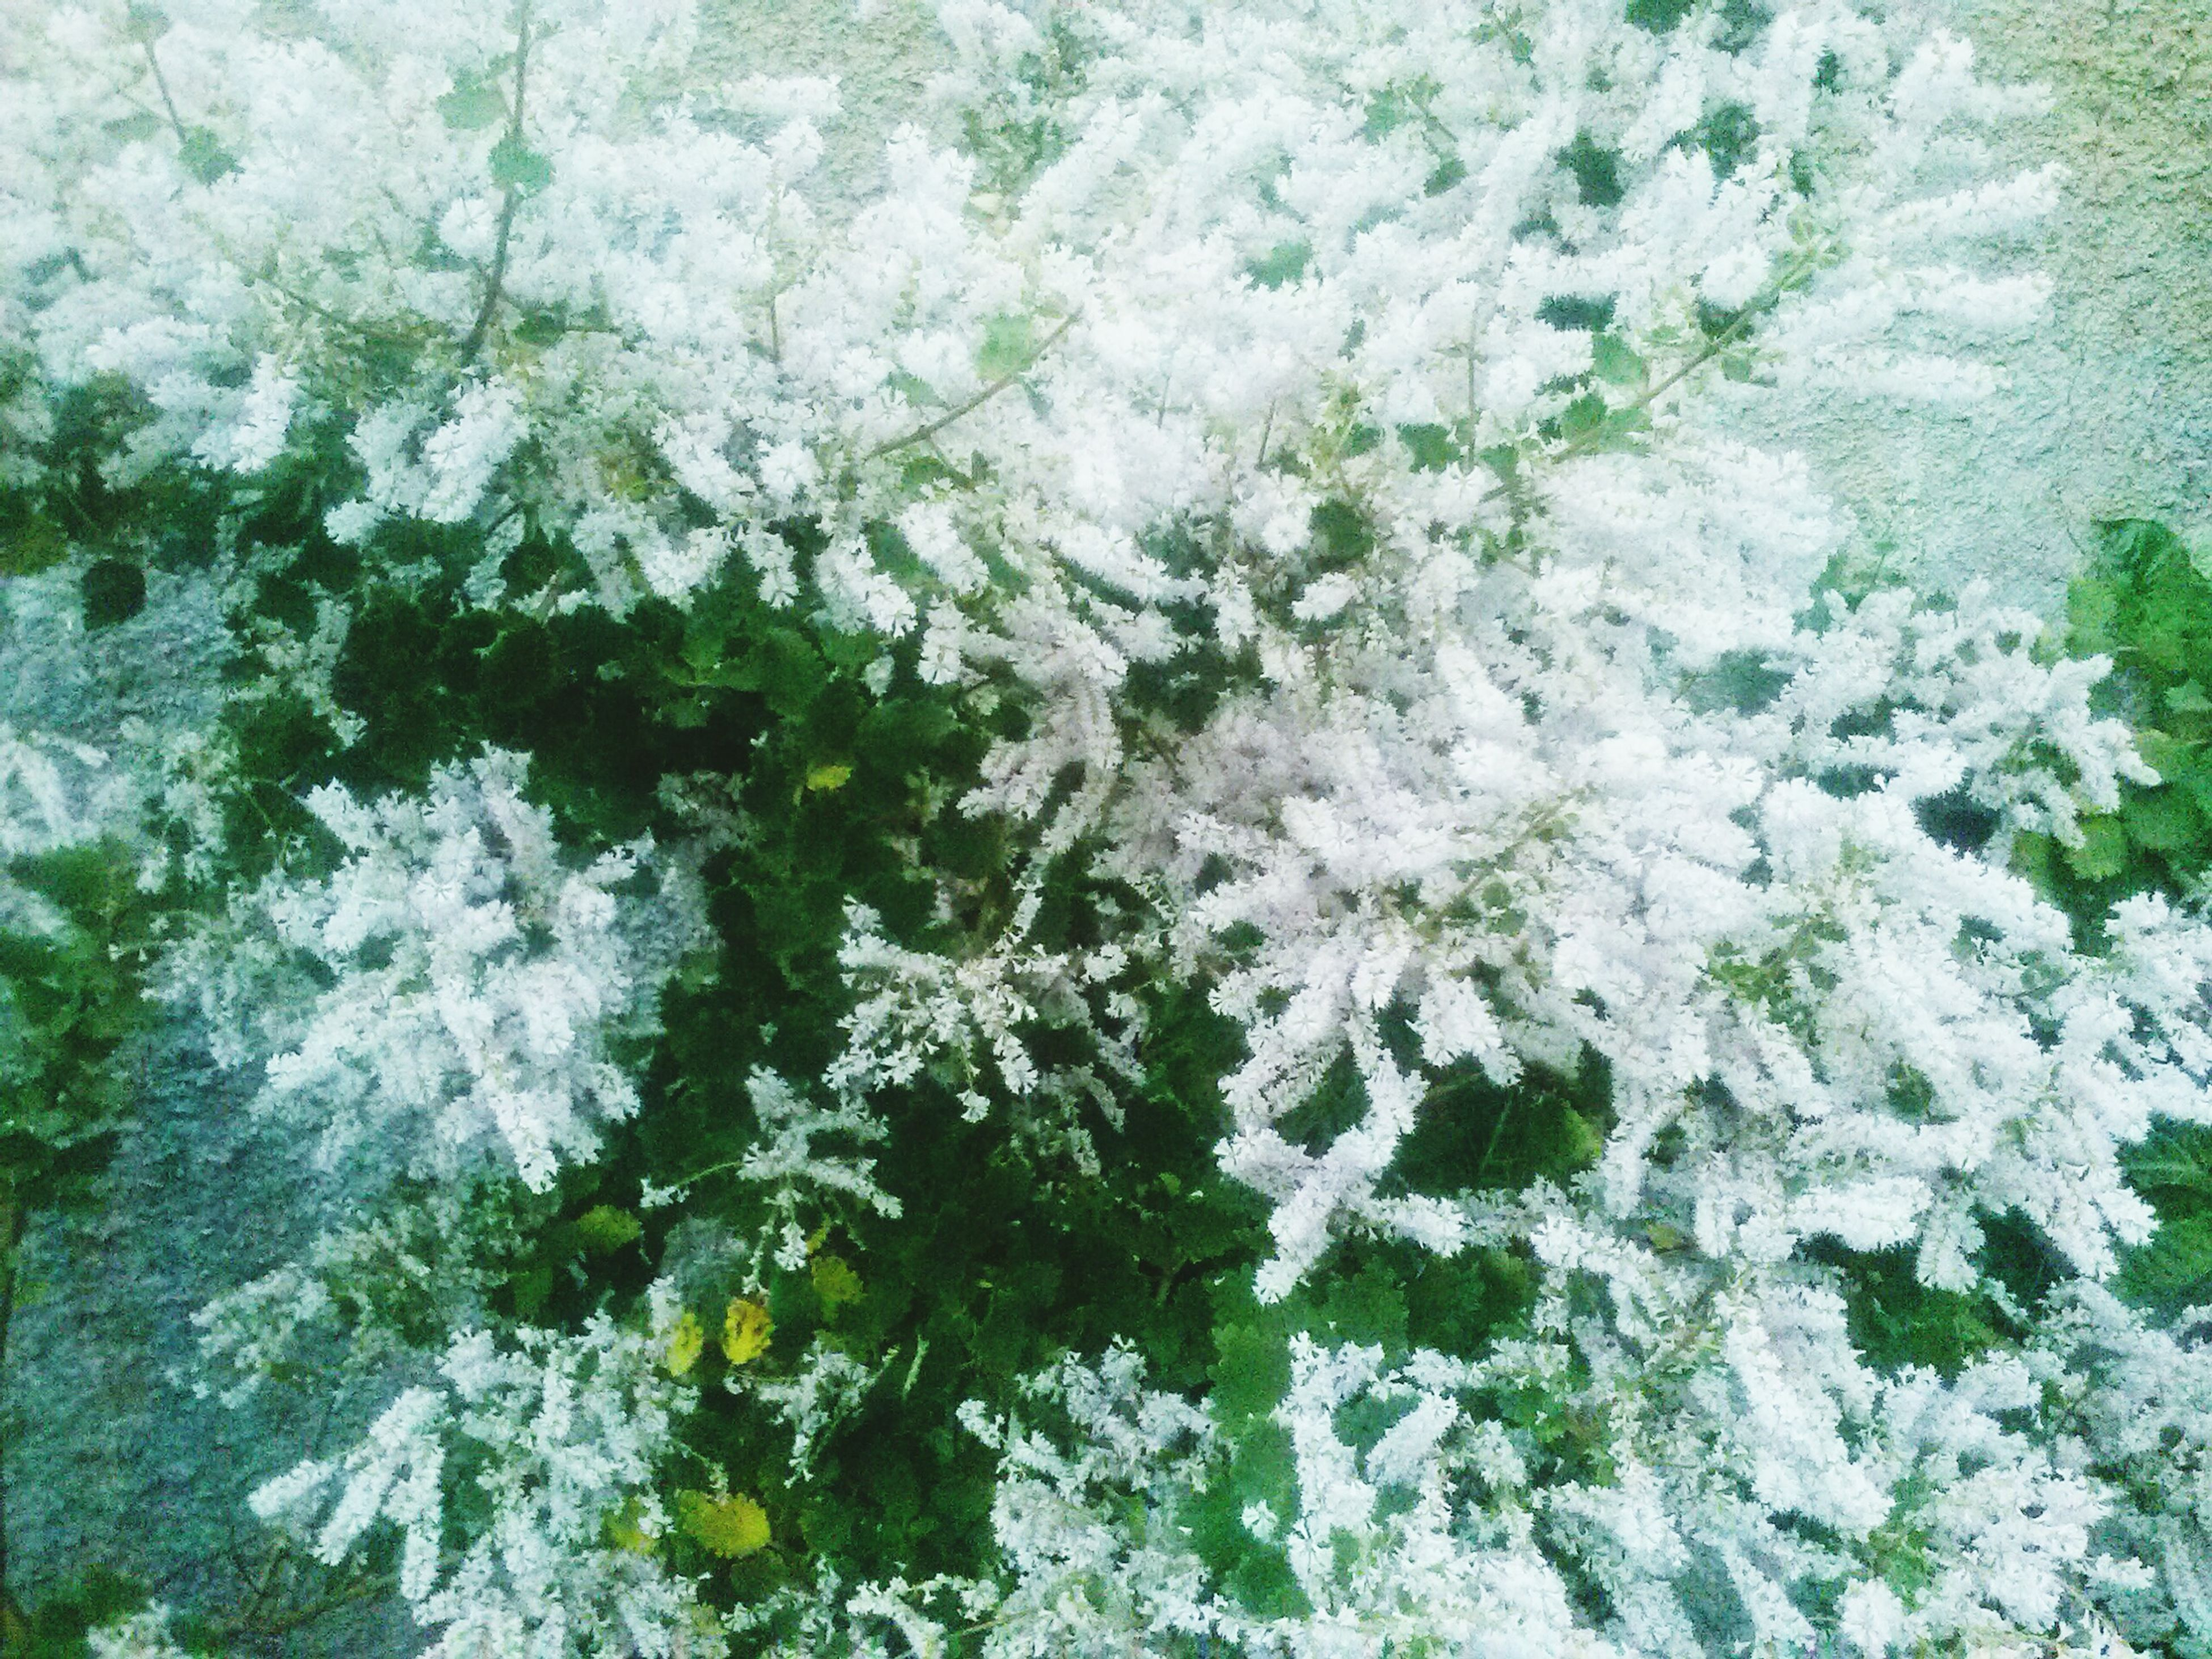 nature, snow, cold temperature, winter, growth, plant, frozen, beauty in nature, ice, no people, fragility, full frame, close-up, day, outdoors, backgrounds, freshness